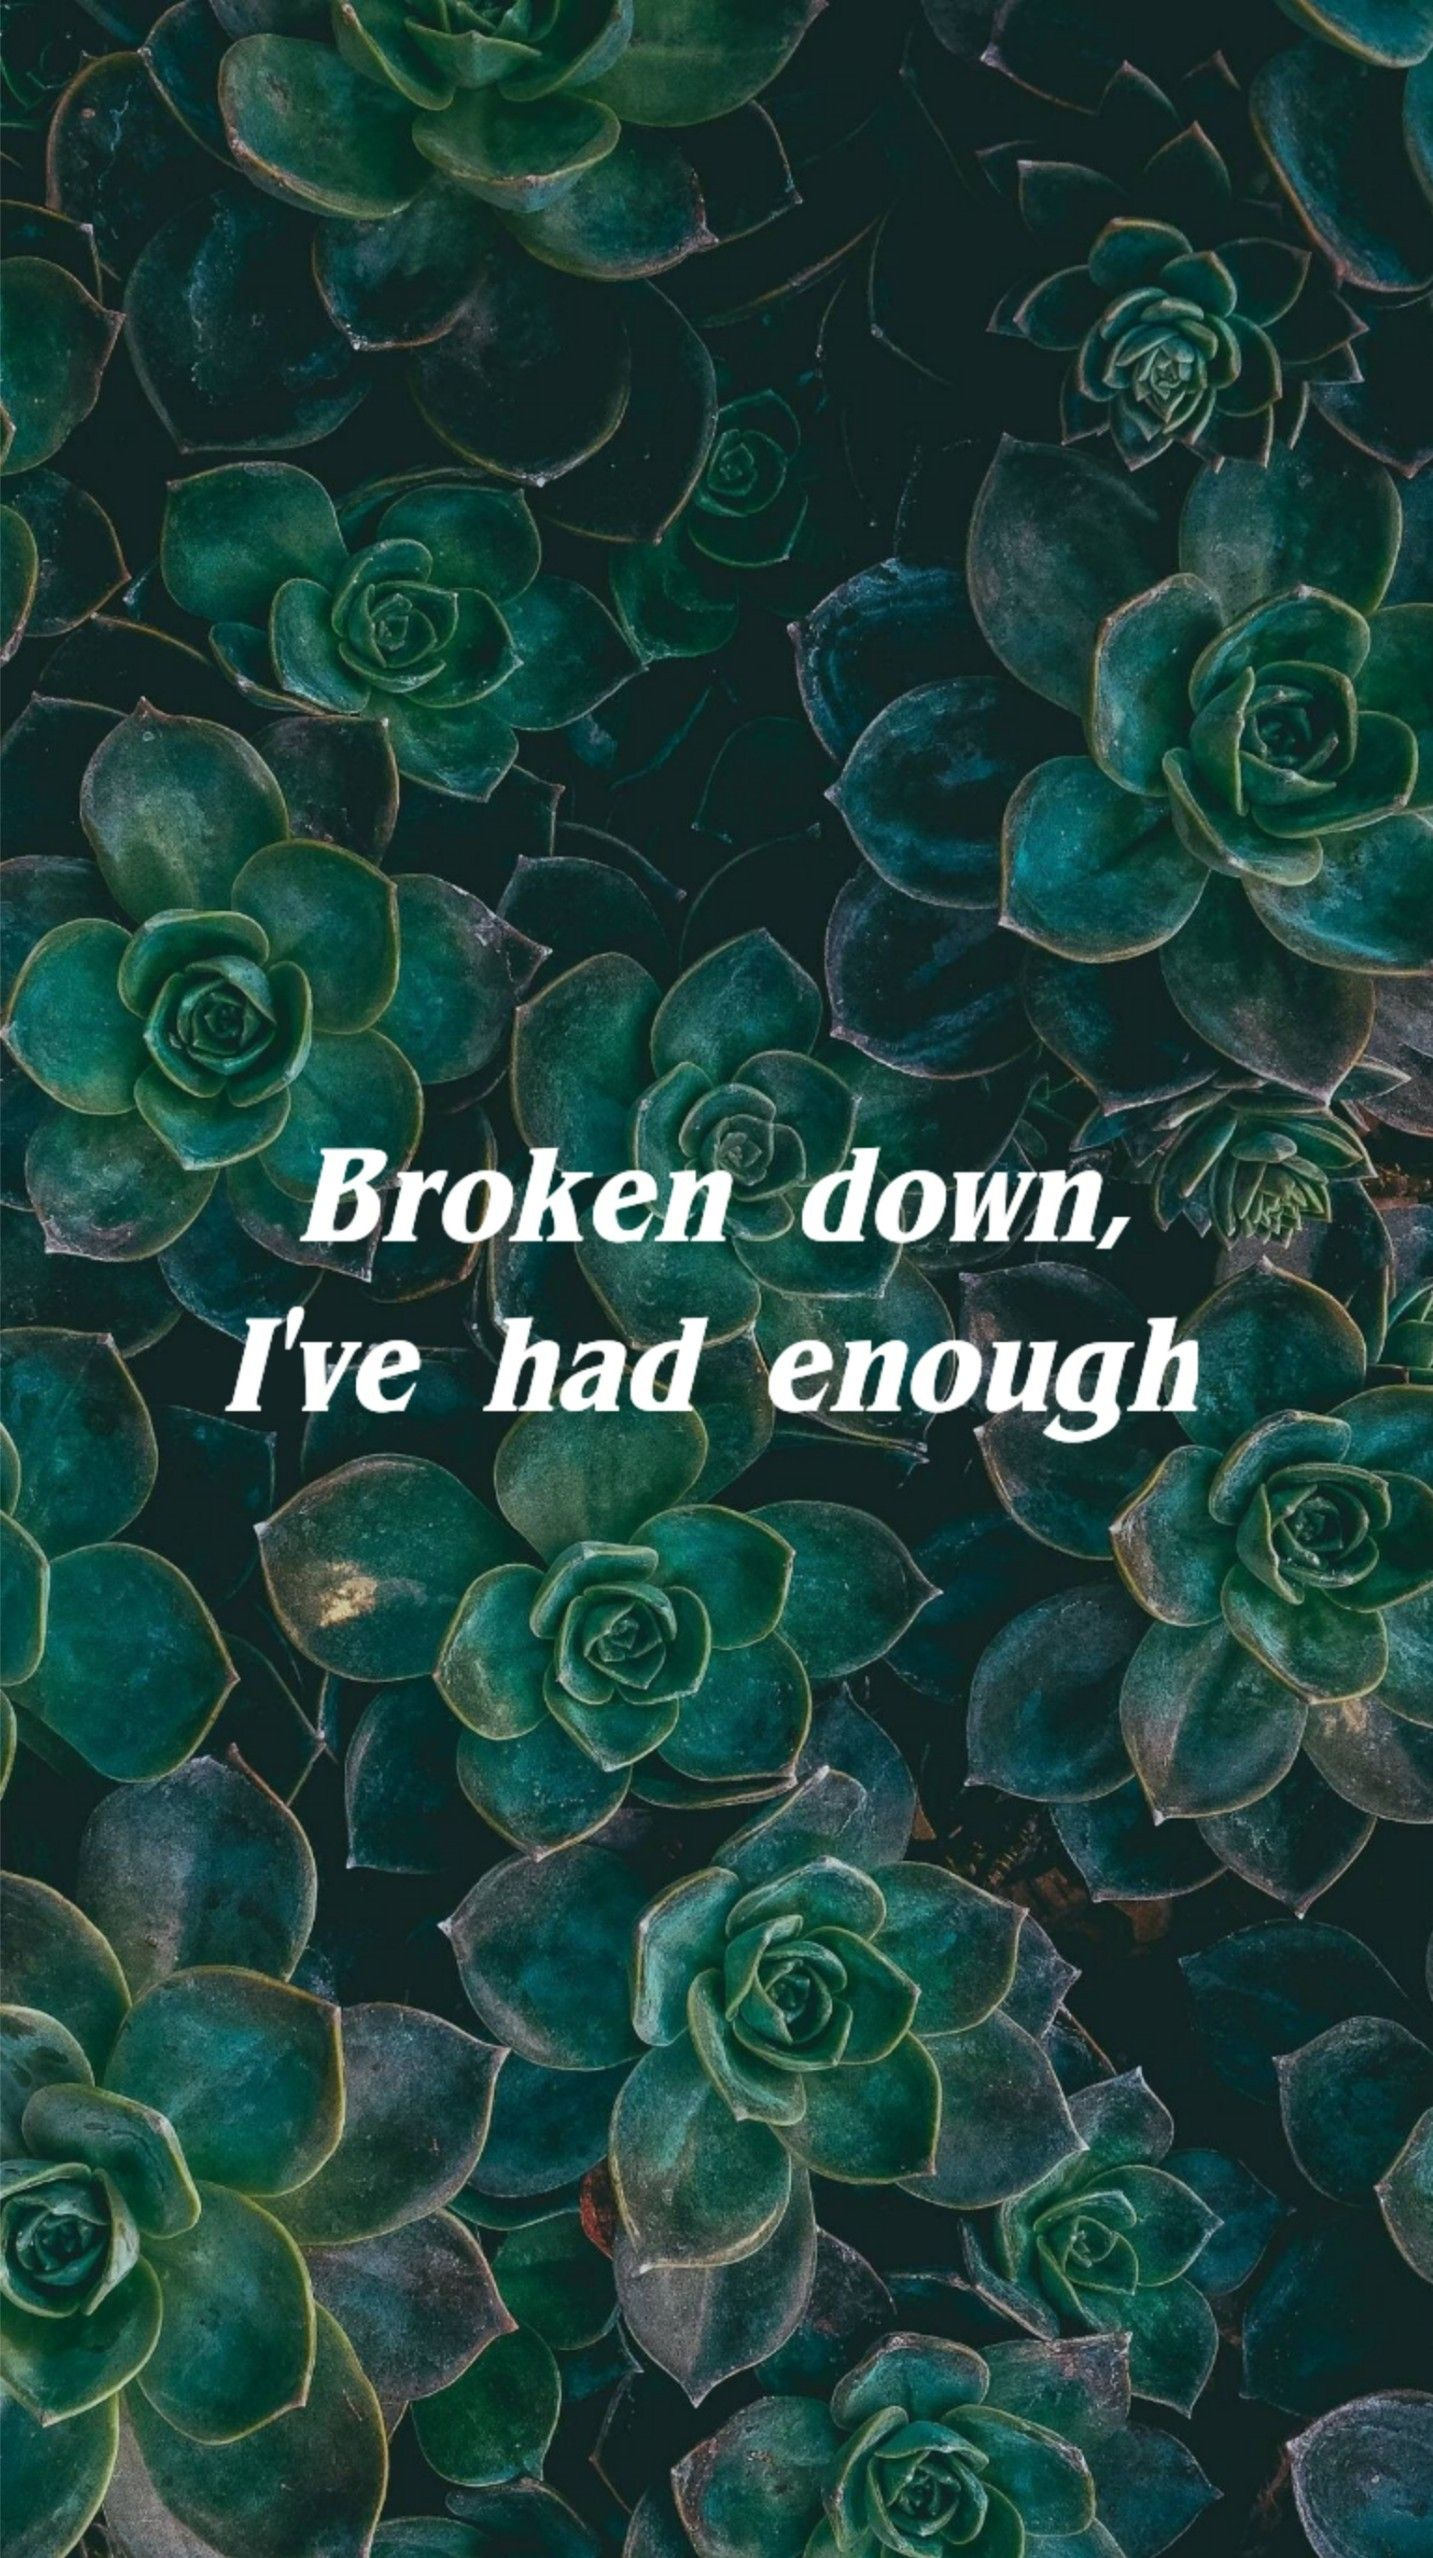 Lany Superfar Lyrics Hd Iphone Wallpaper Broken Green Design